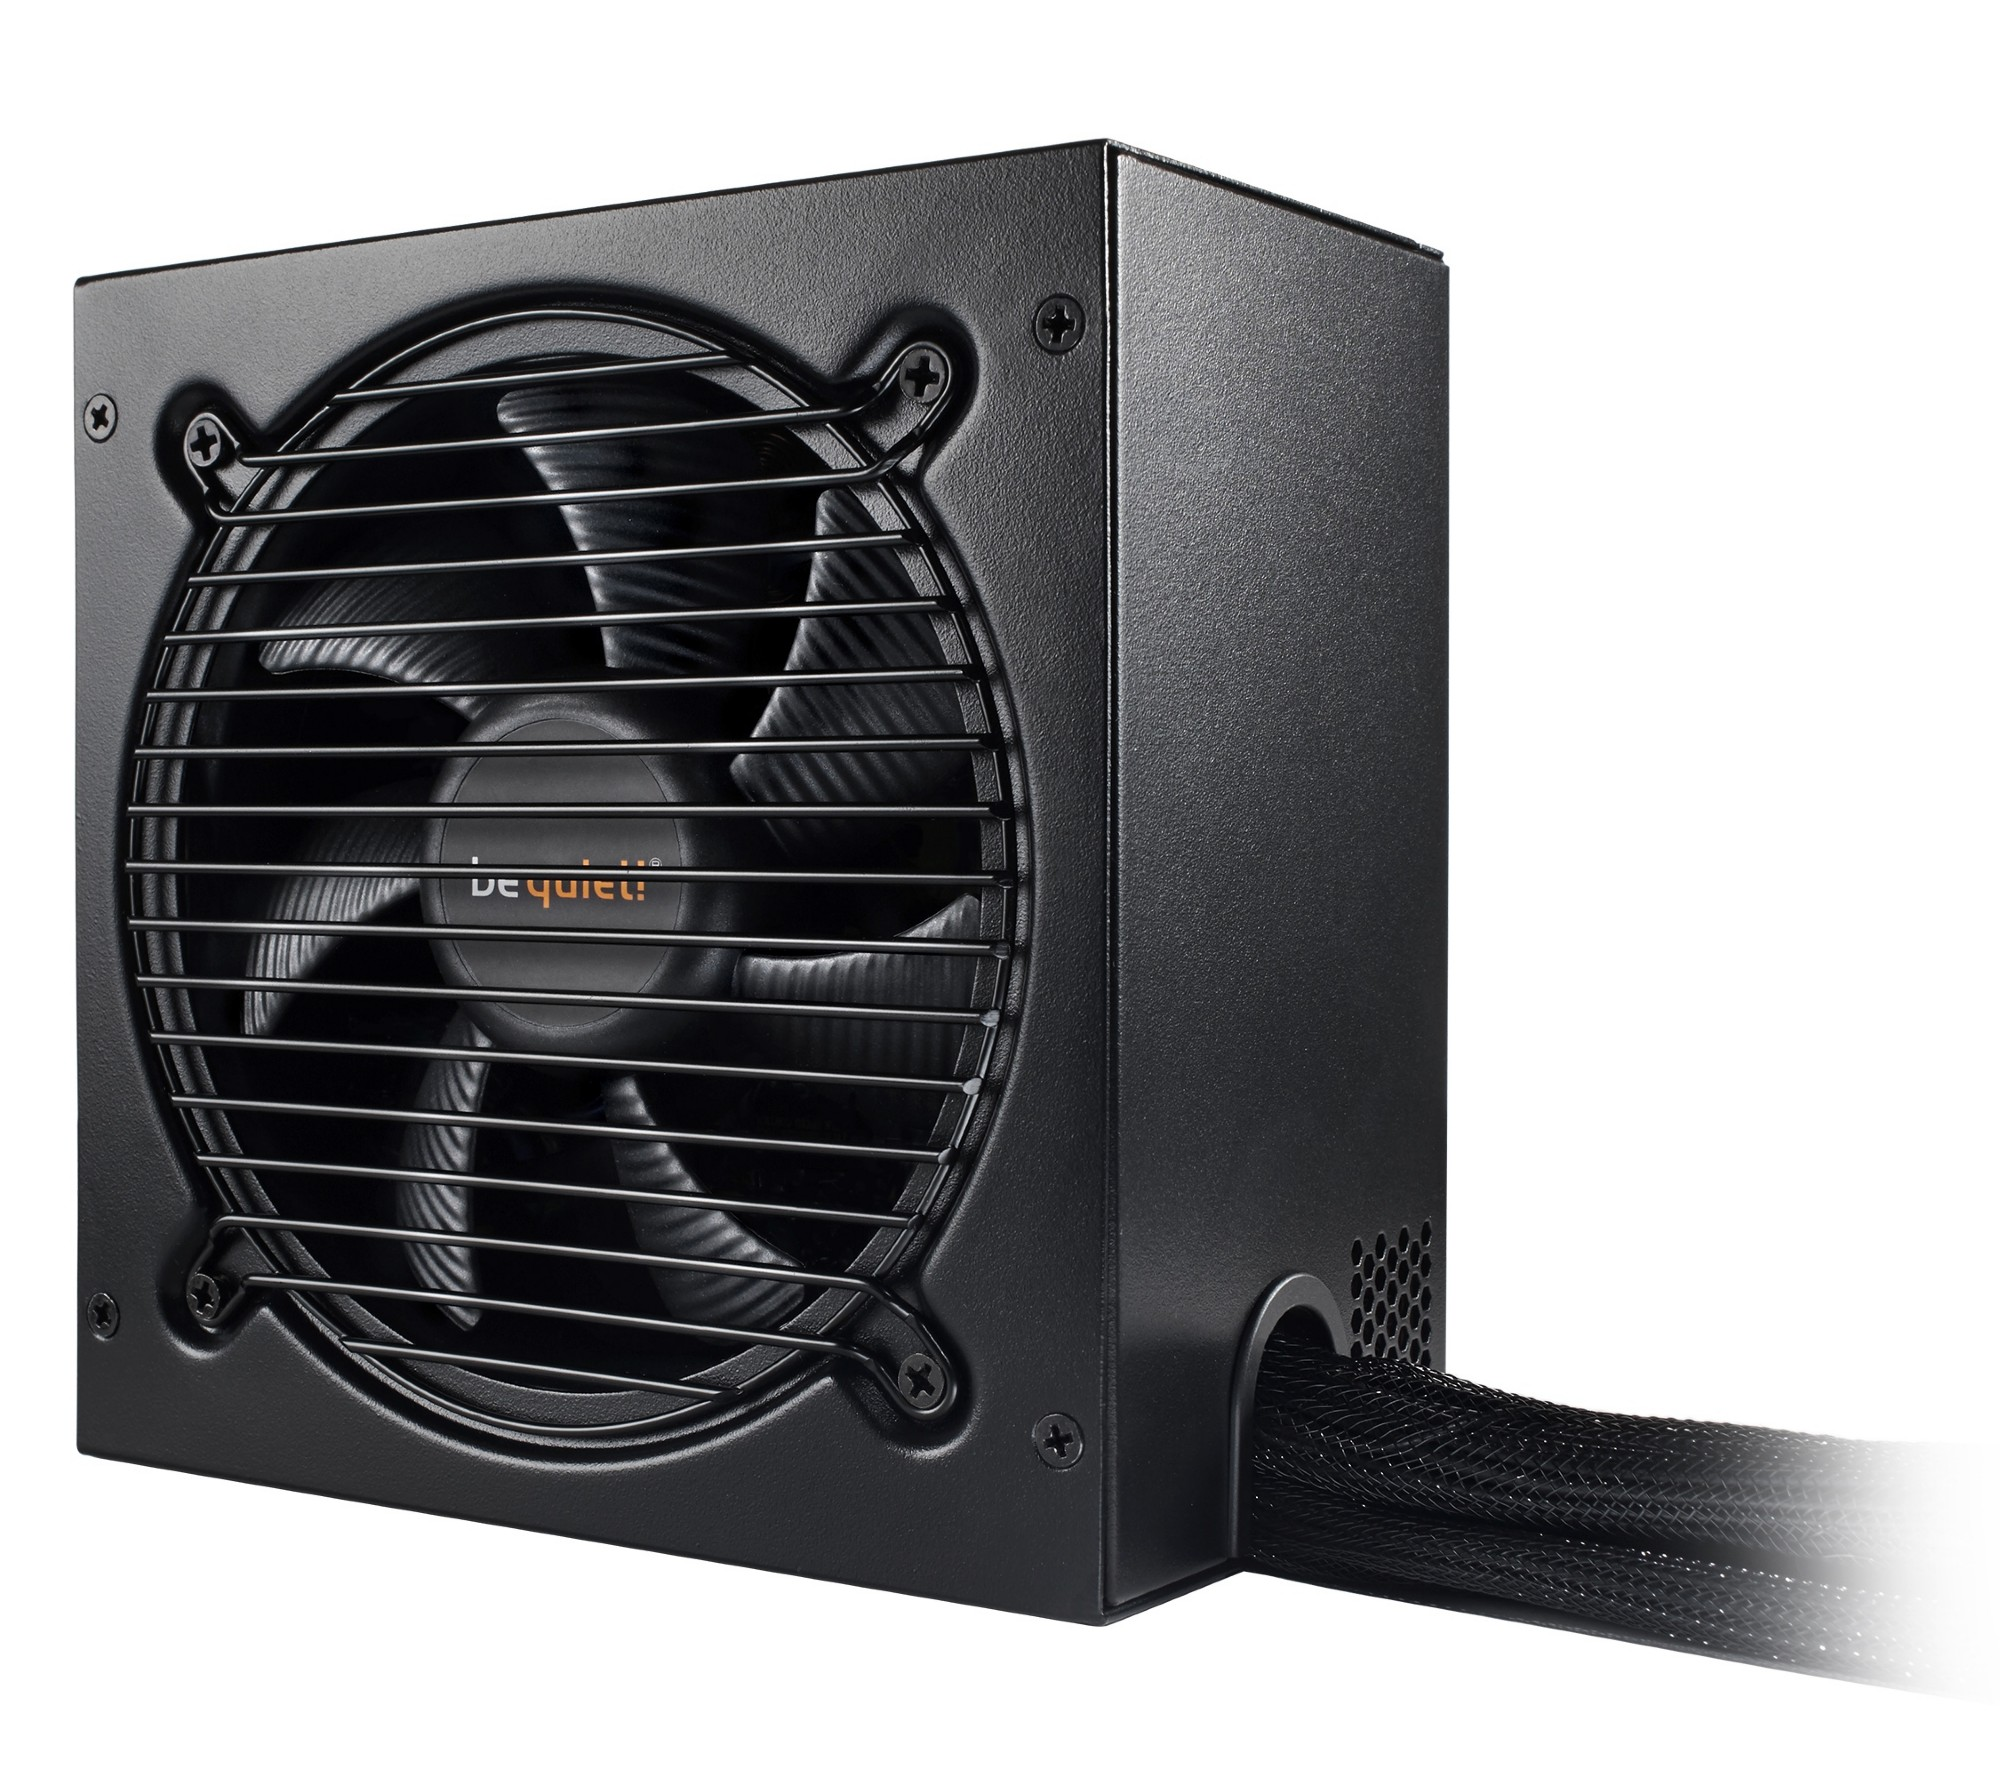 BE QUIET! BN292 PURE POWER 11 400W SUPPLY UNIT ATX BLACK